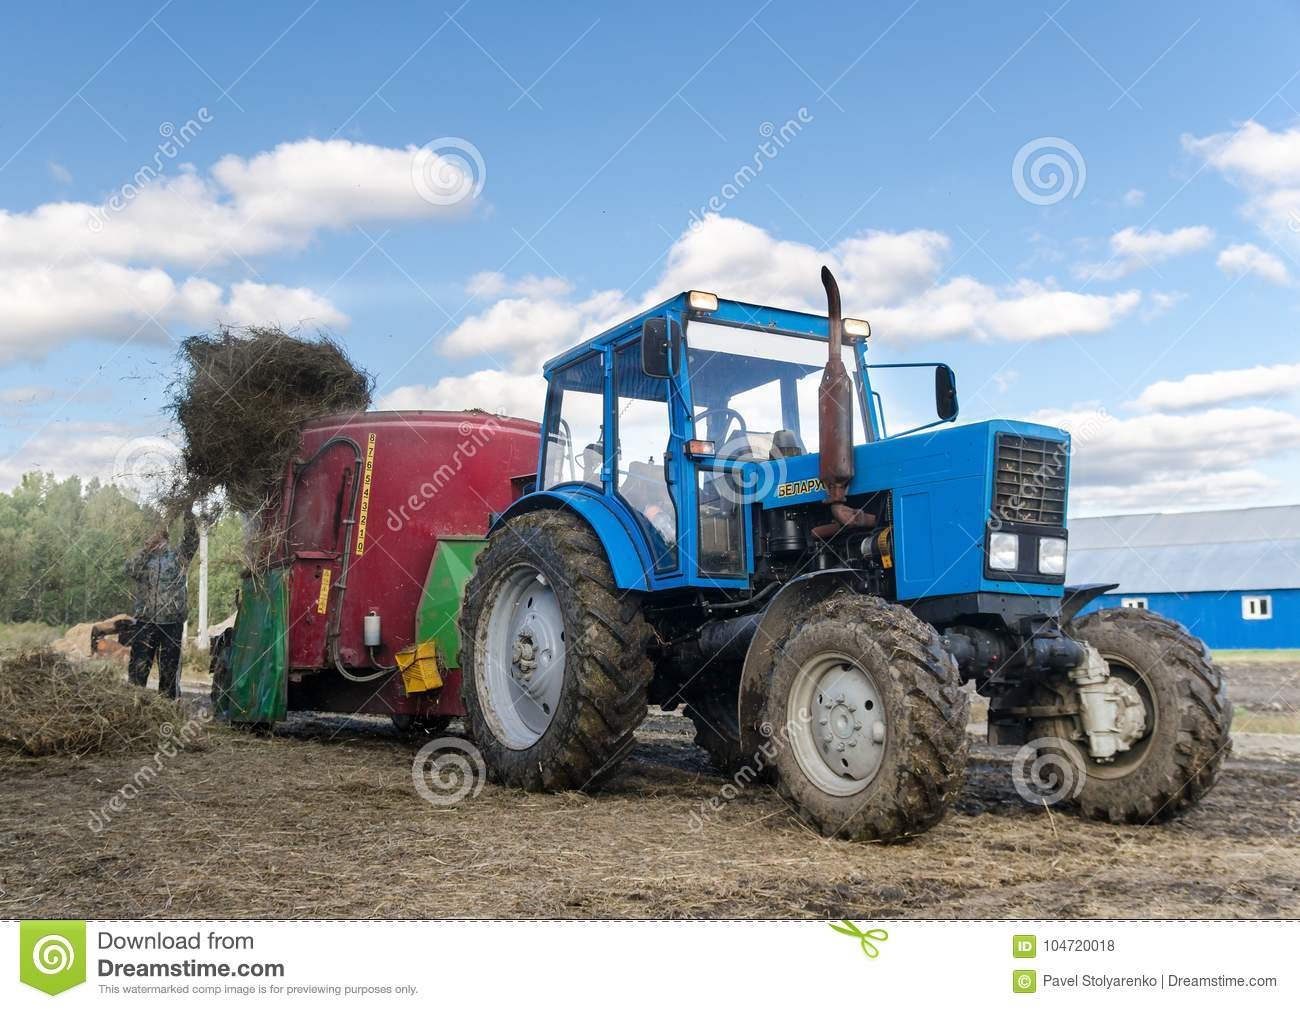 Tractor Wit-Rusland